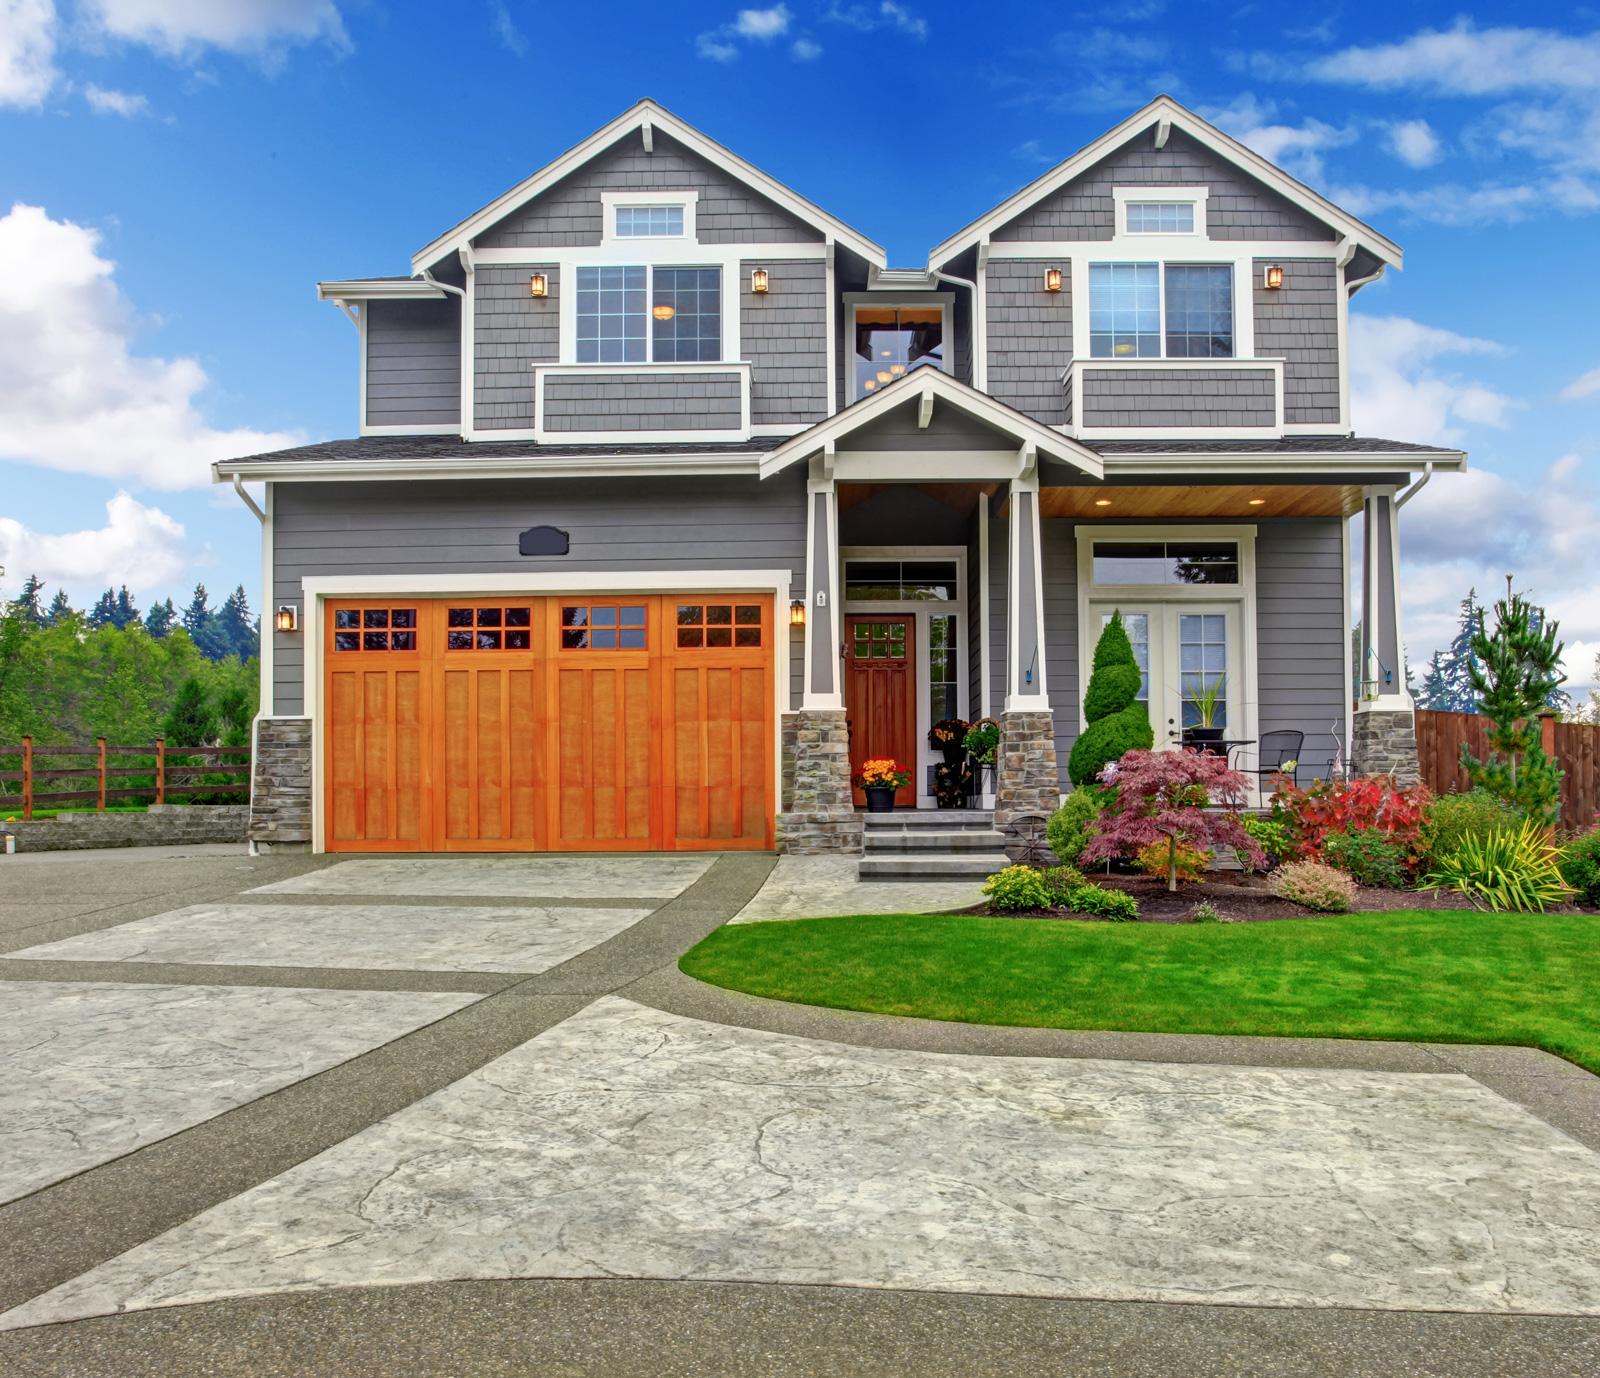 custom-build-home home inspection services